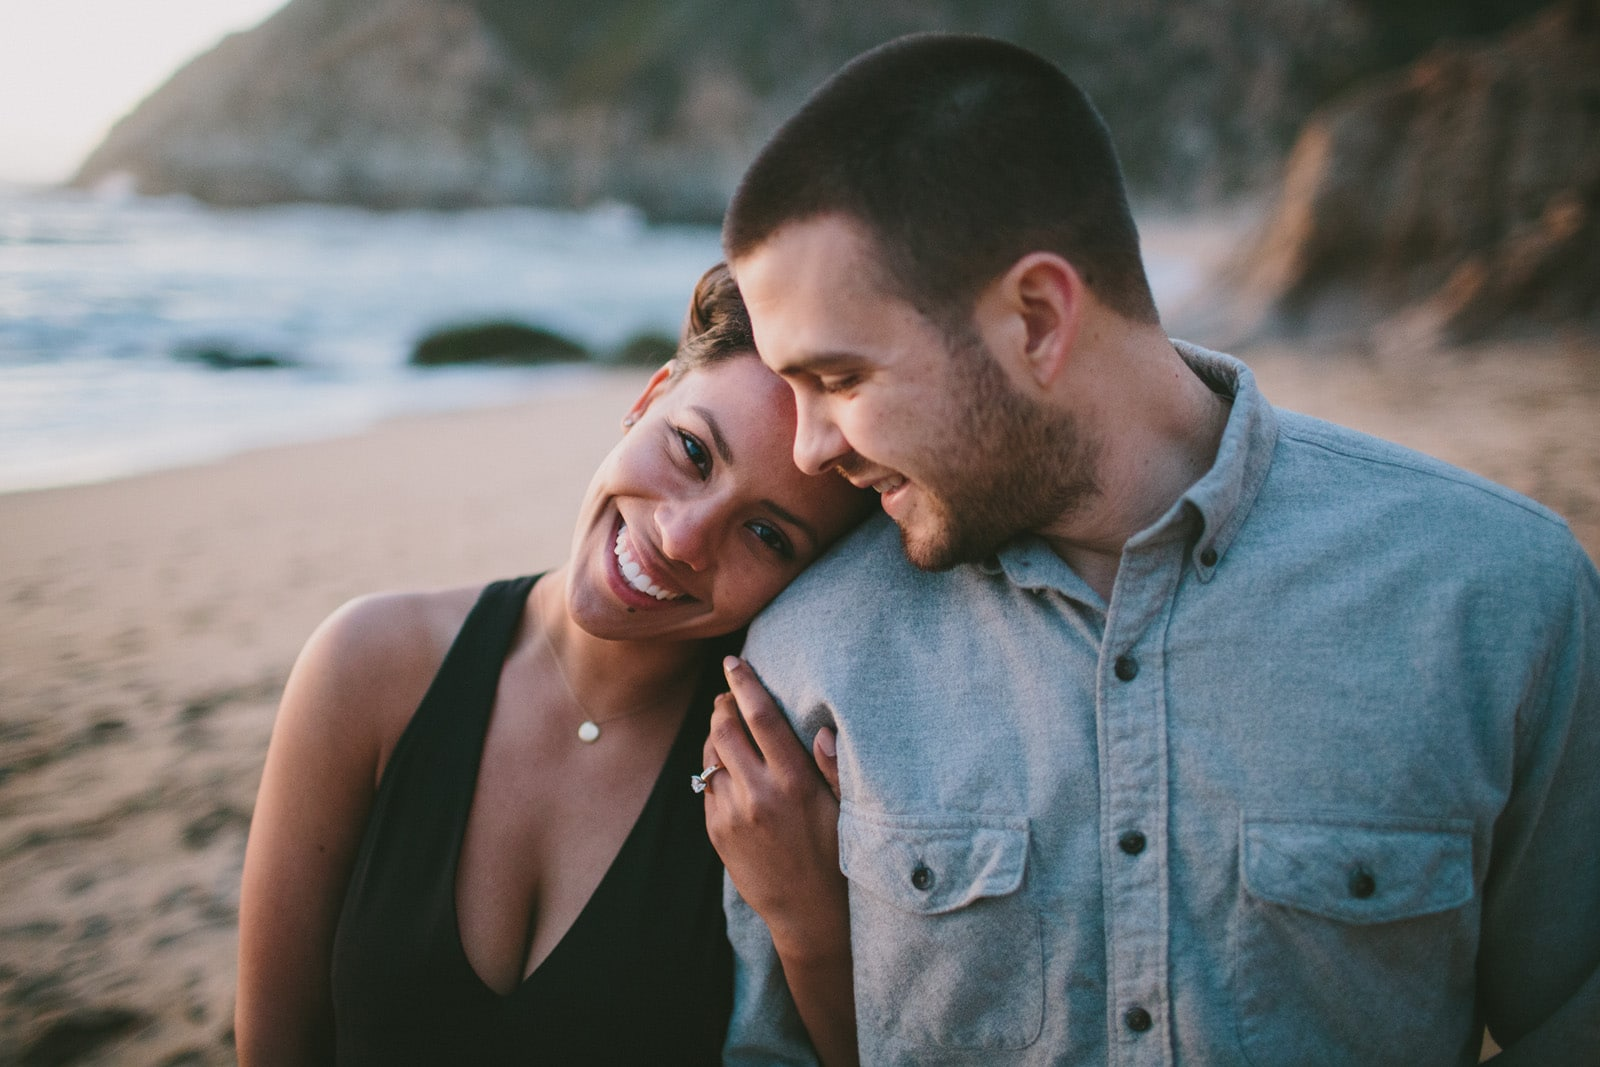 San_Francisco_Engagment_Session_Beach_Engagment_Session_023